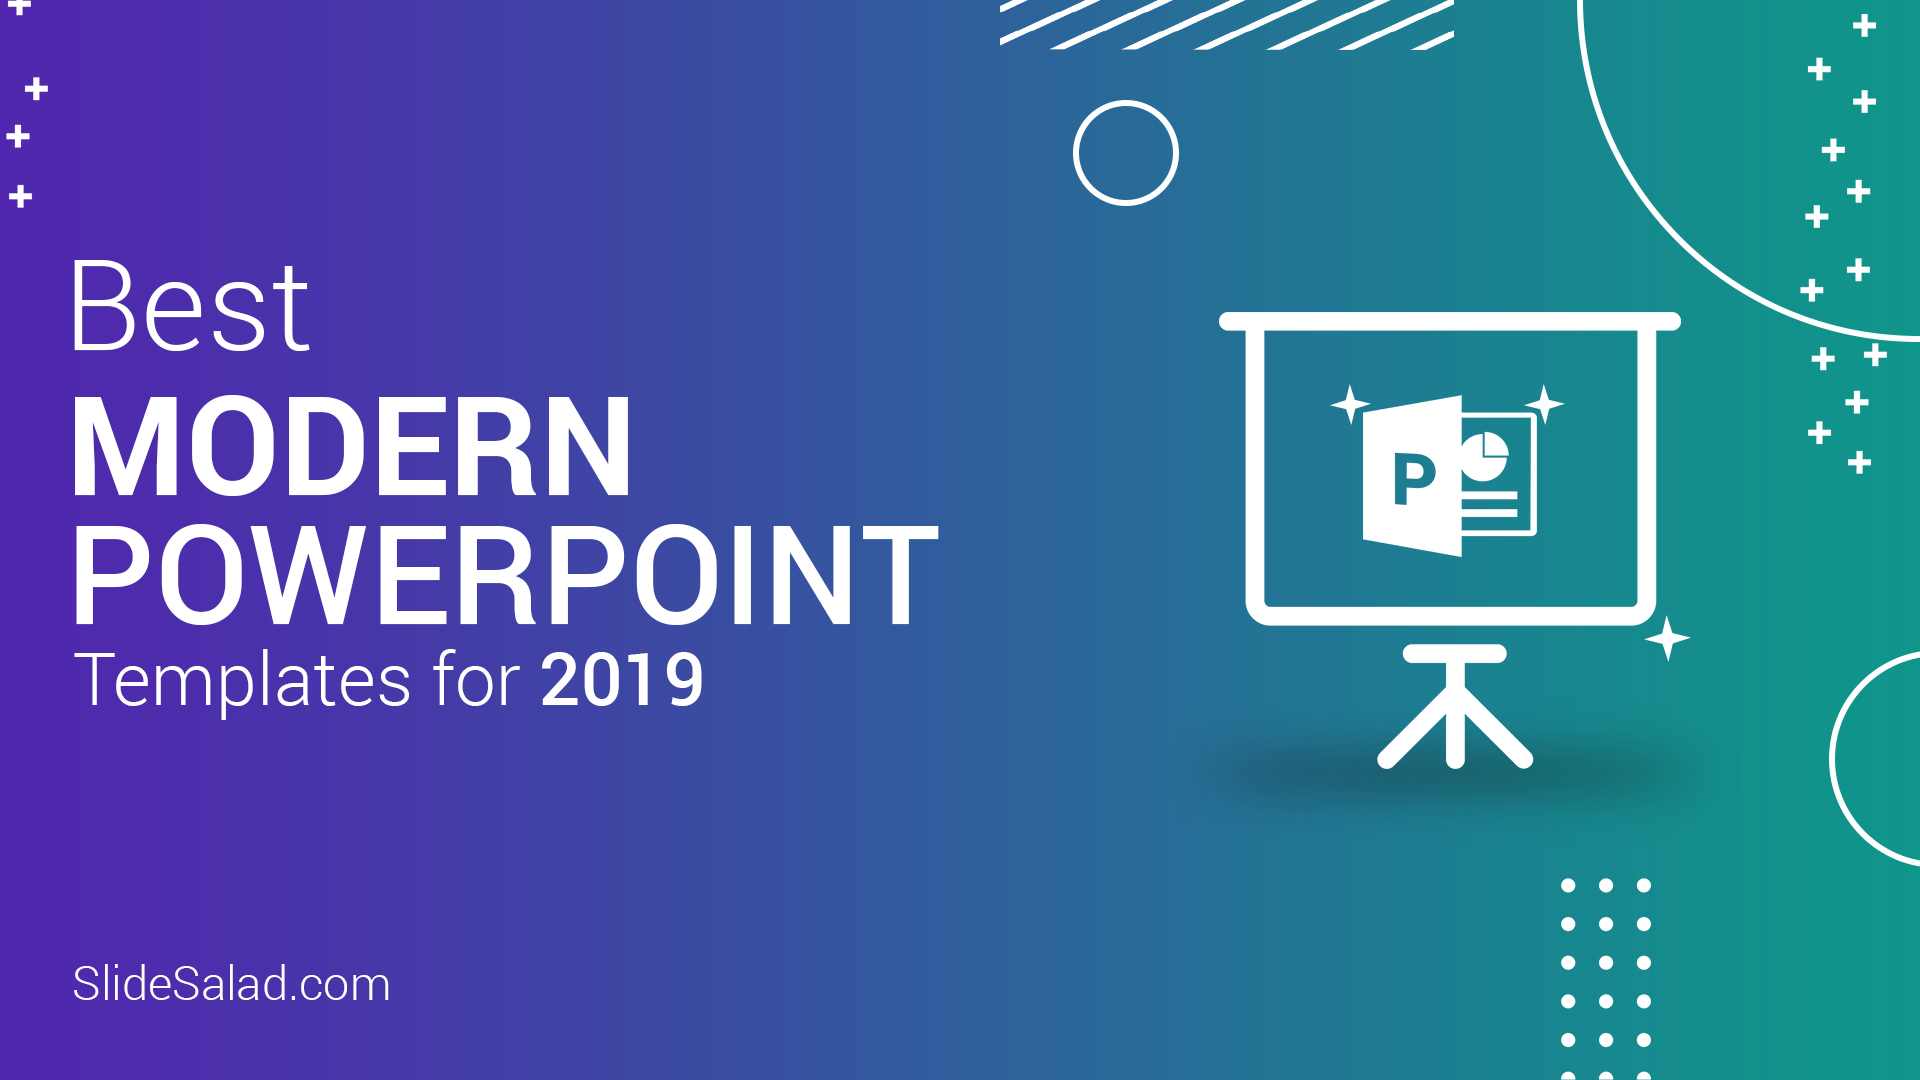 best modern powerpoint templates for 2020